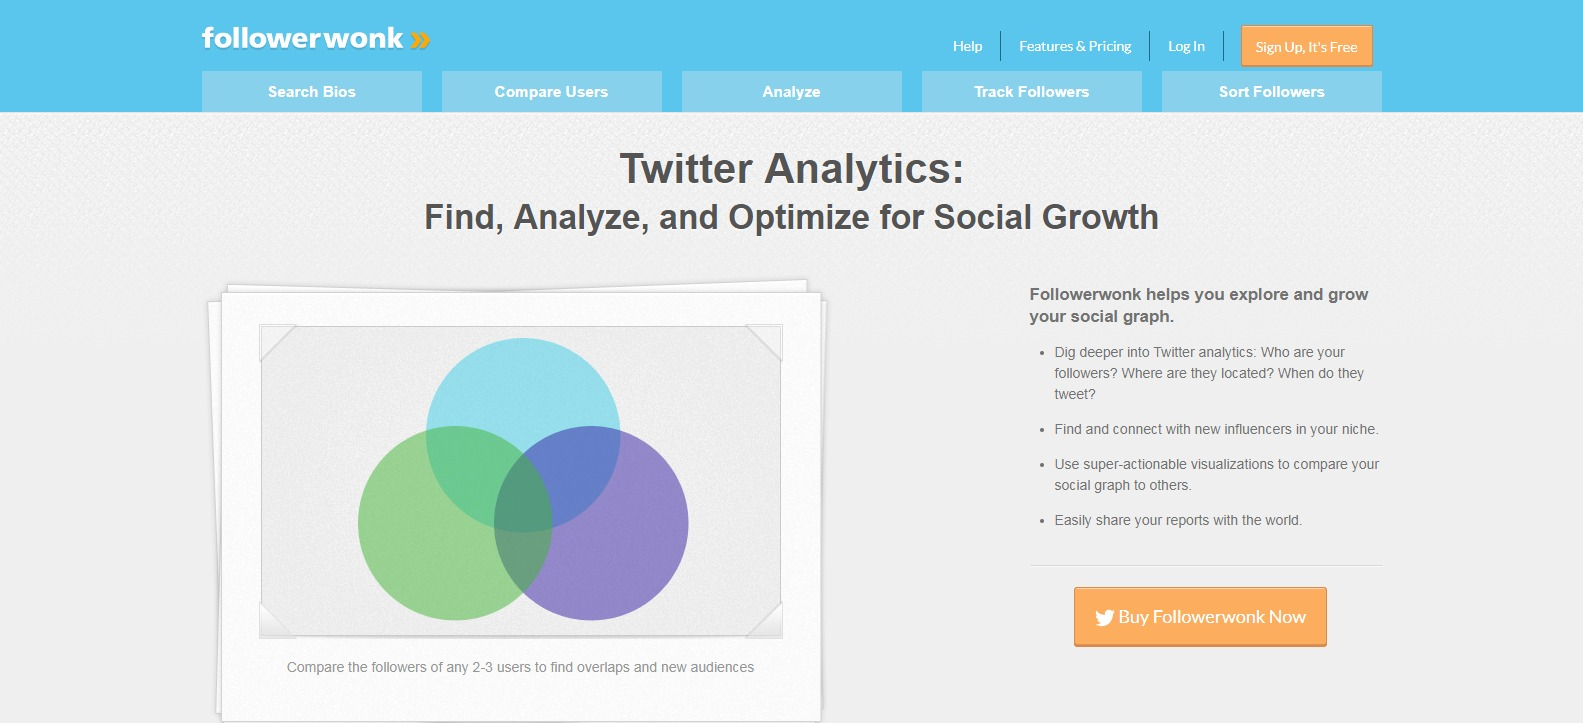 Followerwonk - Tools for Twitter Analytics Bio Search